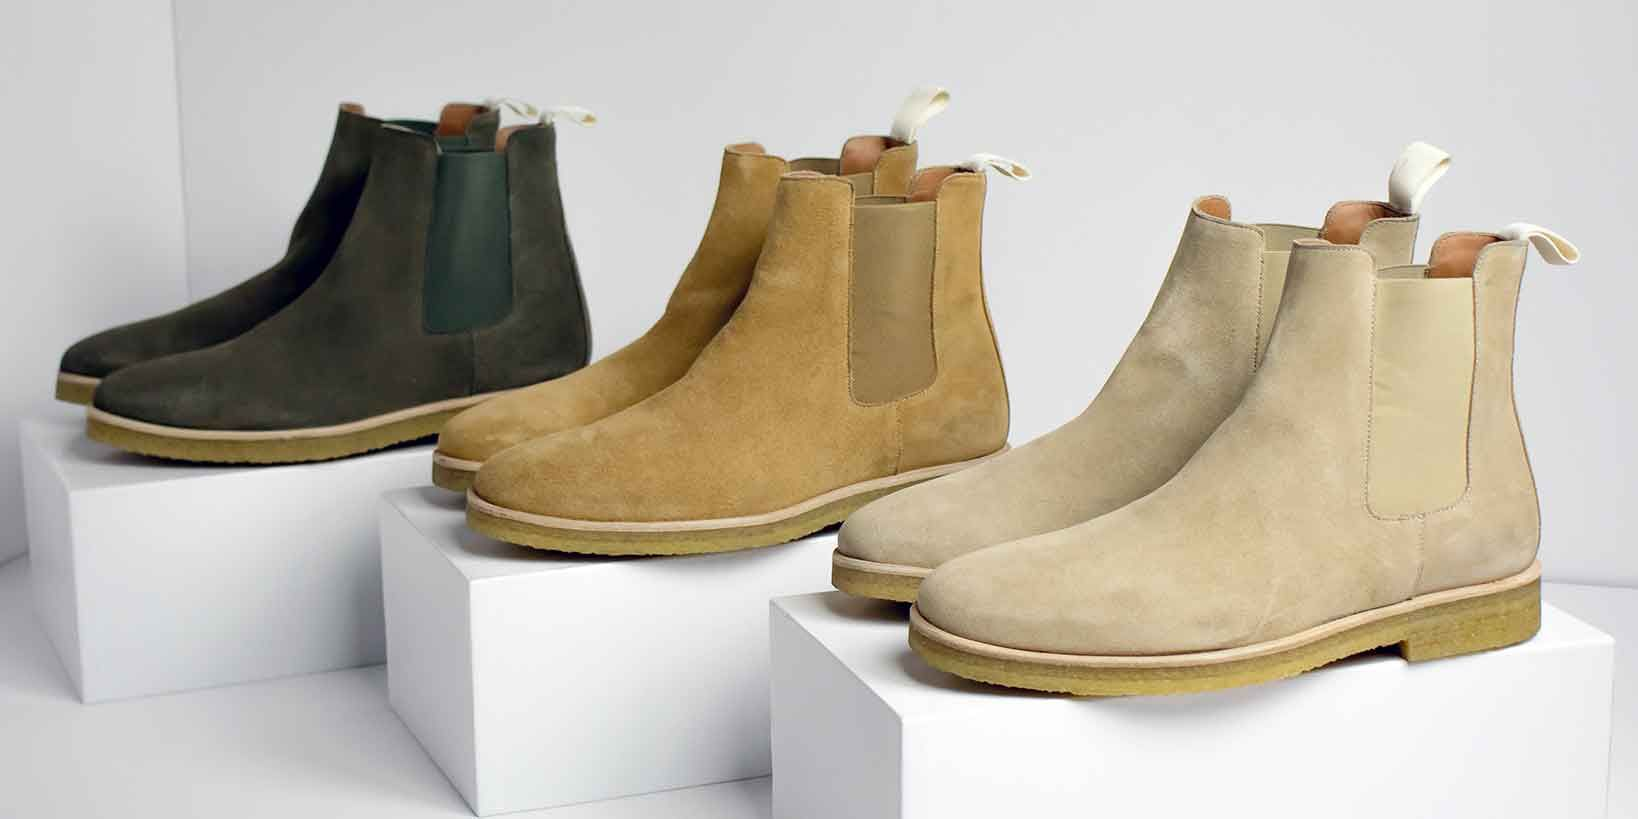 This Luxe Sneaker Startup Just Launched Chelsea Boots—and You're Going to Want a Pair